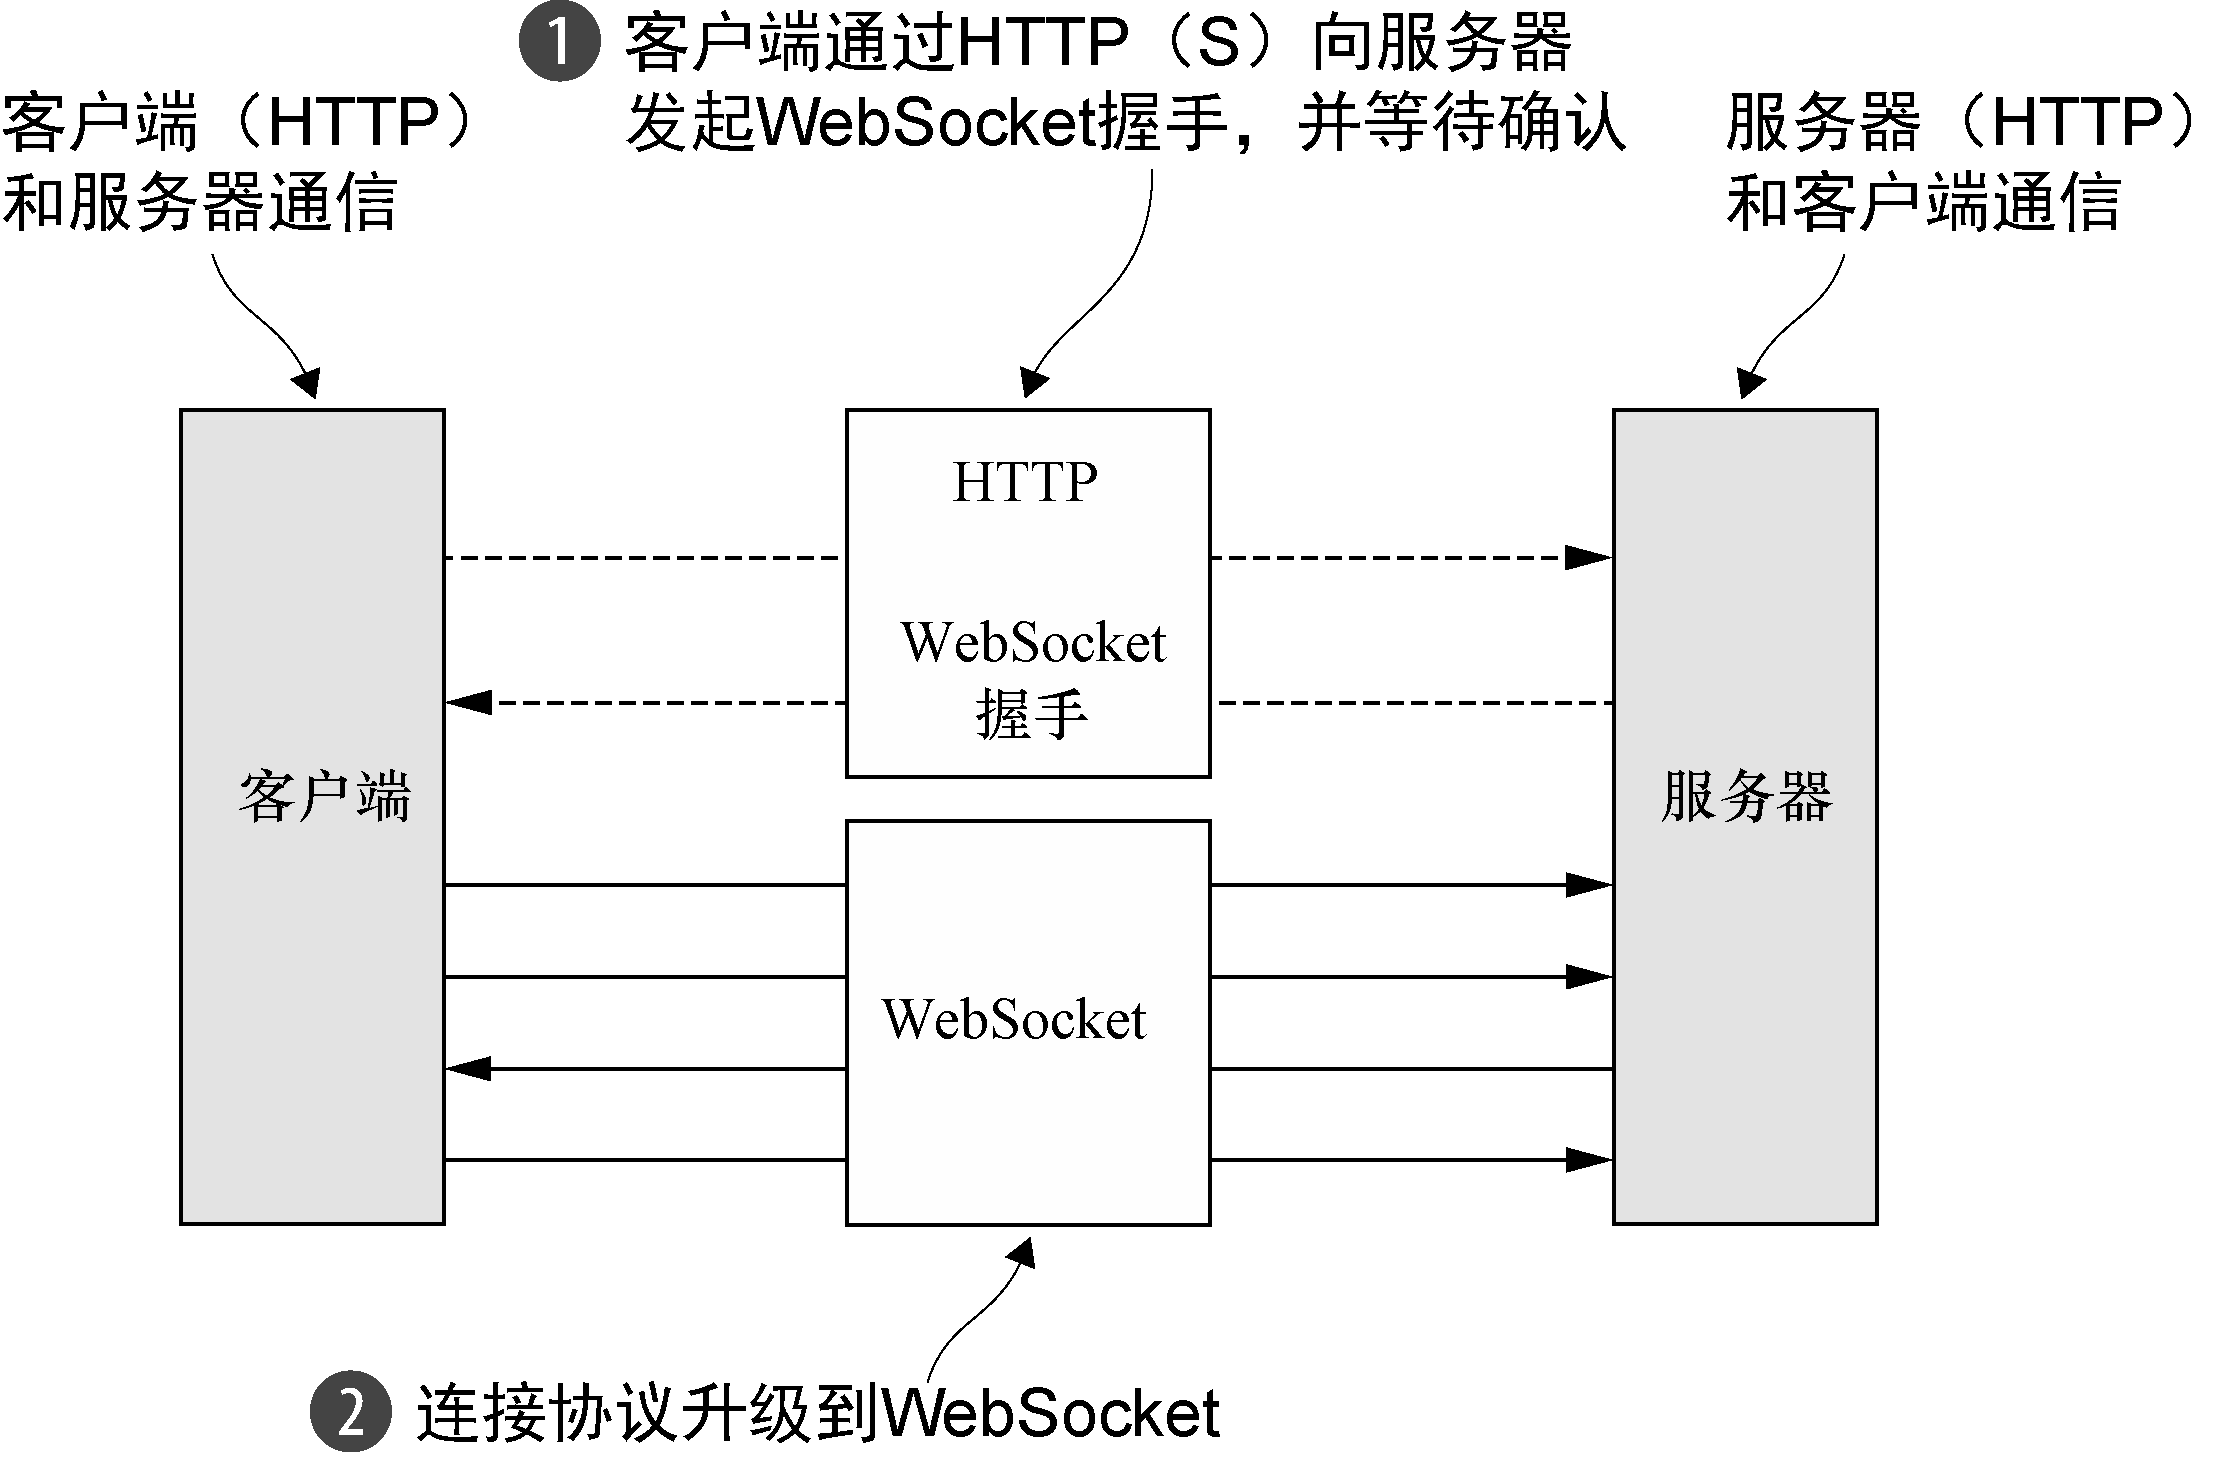 websocket flow